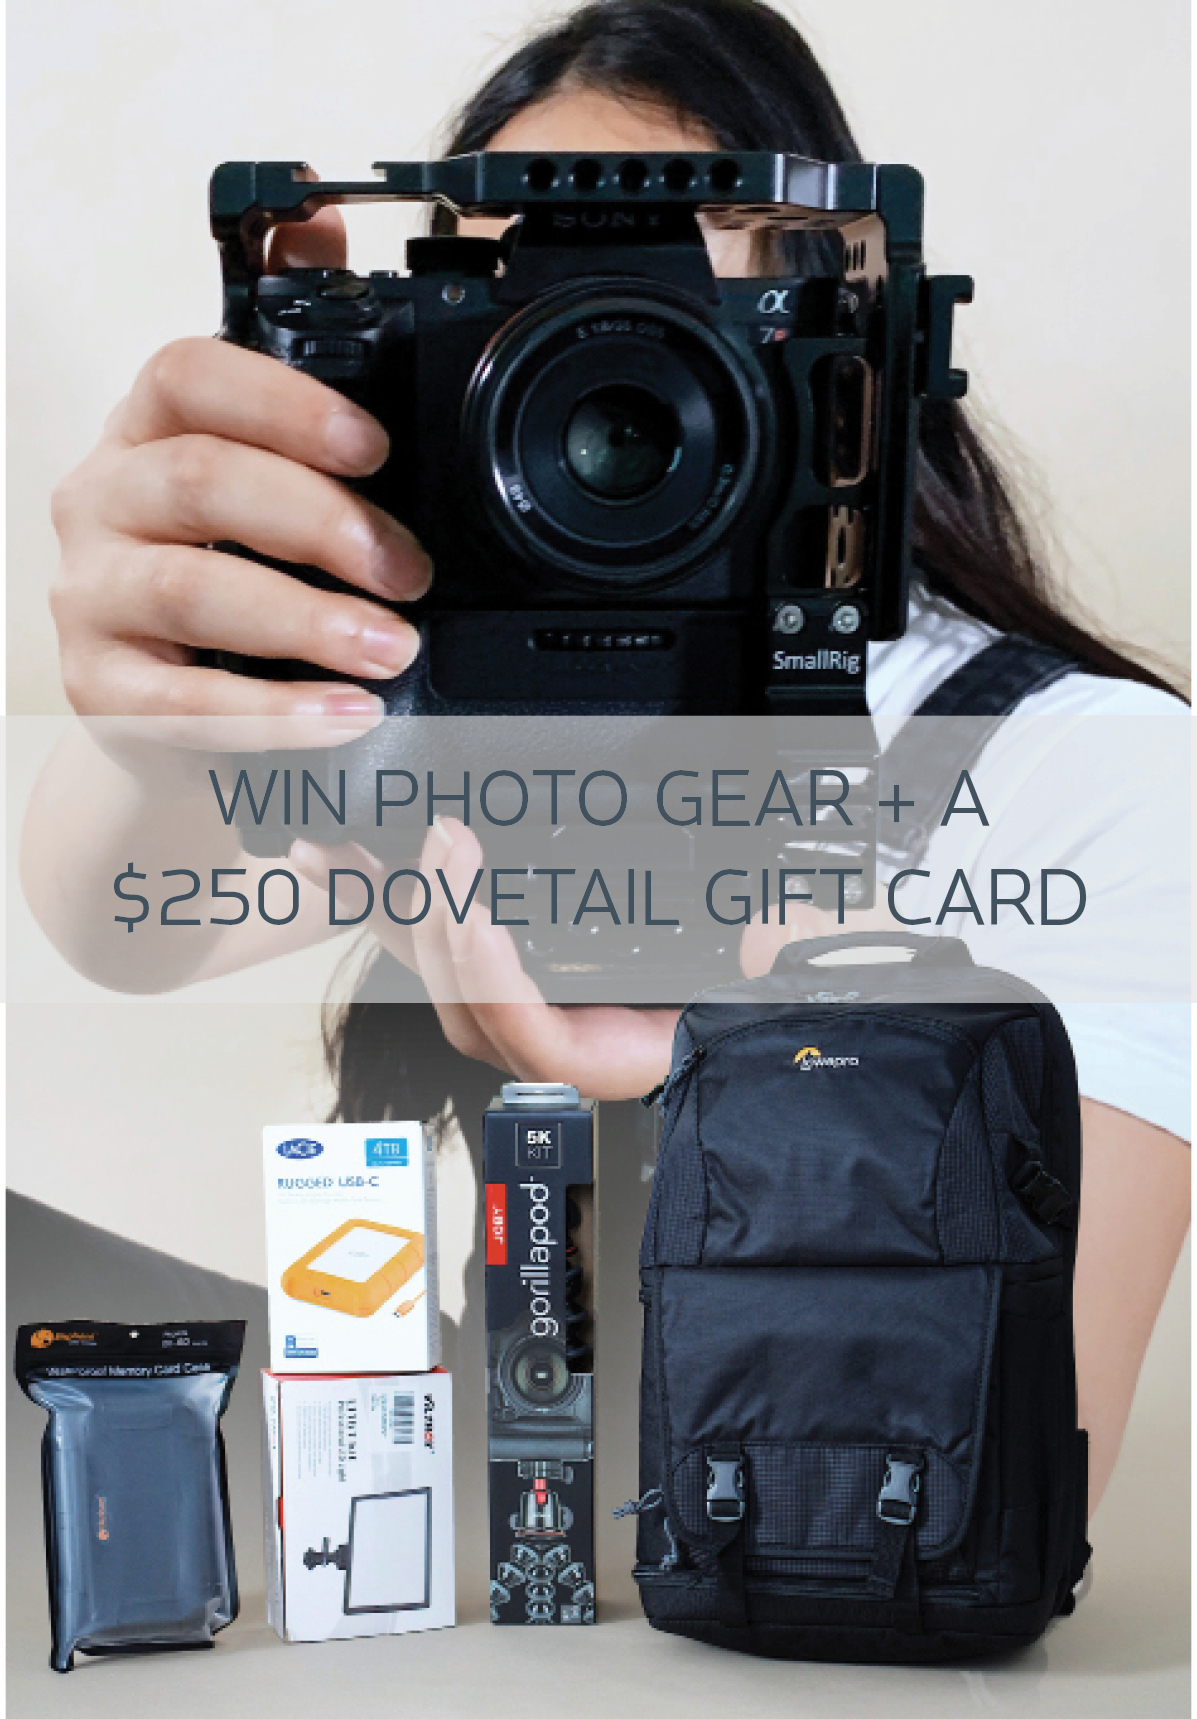 The Photographer's 2020 Vision Package. Win $250 Dovetail Workwear giftcard, 4TB Hard Drive, Gorilla Tripod Giveaway Image